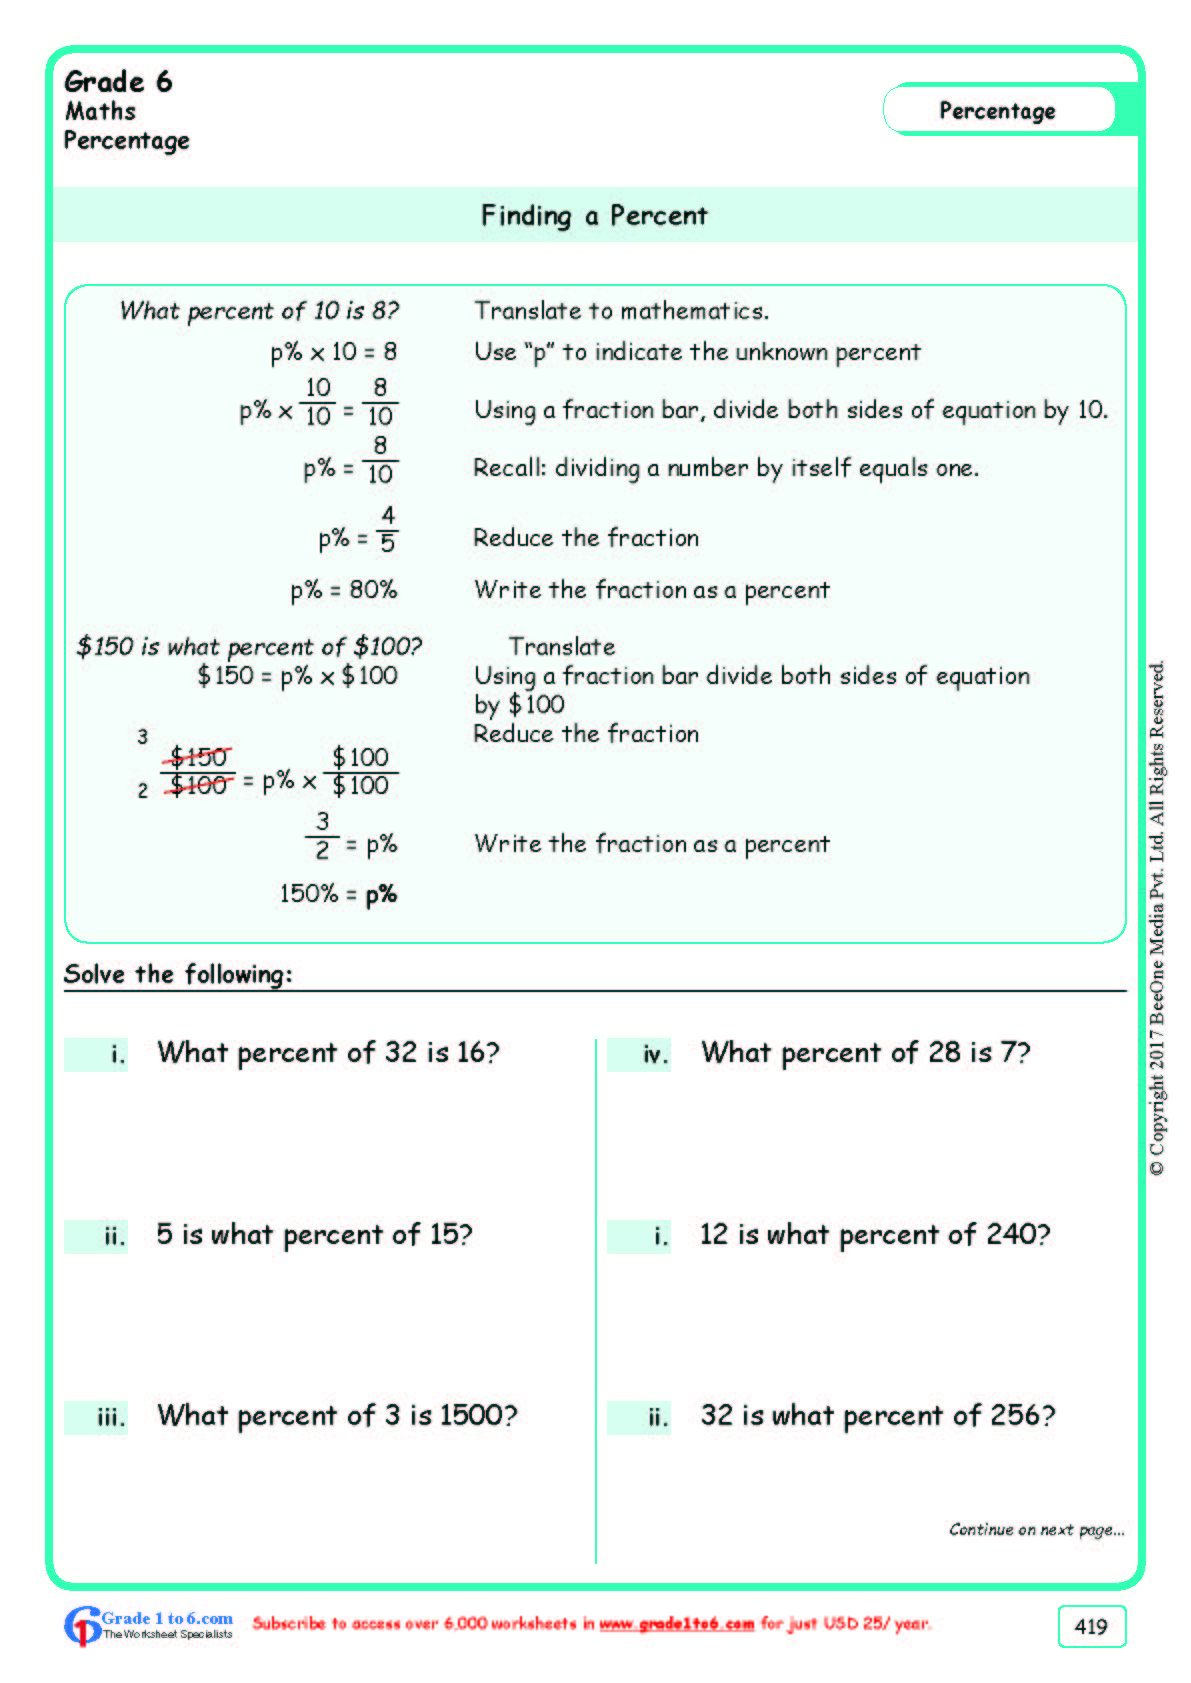 Worksheet Grad E 6 Math Finding A Percent In